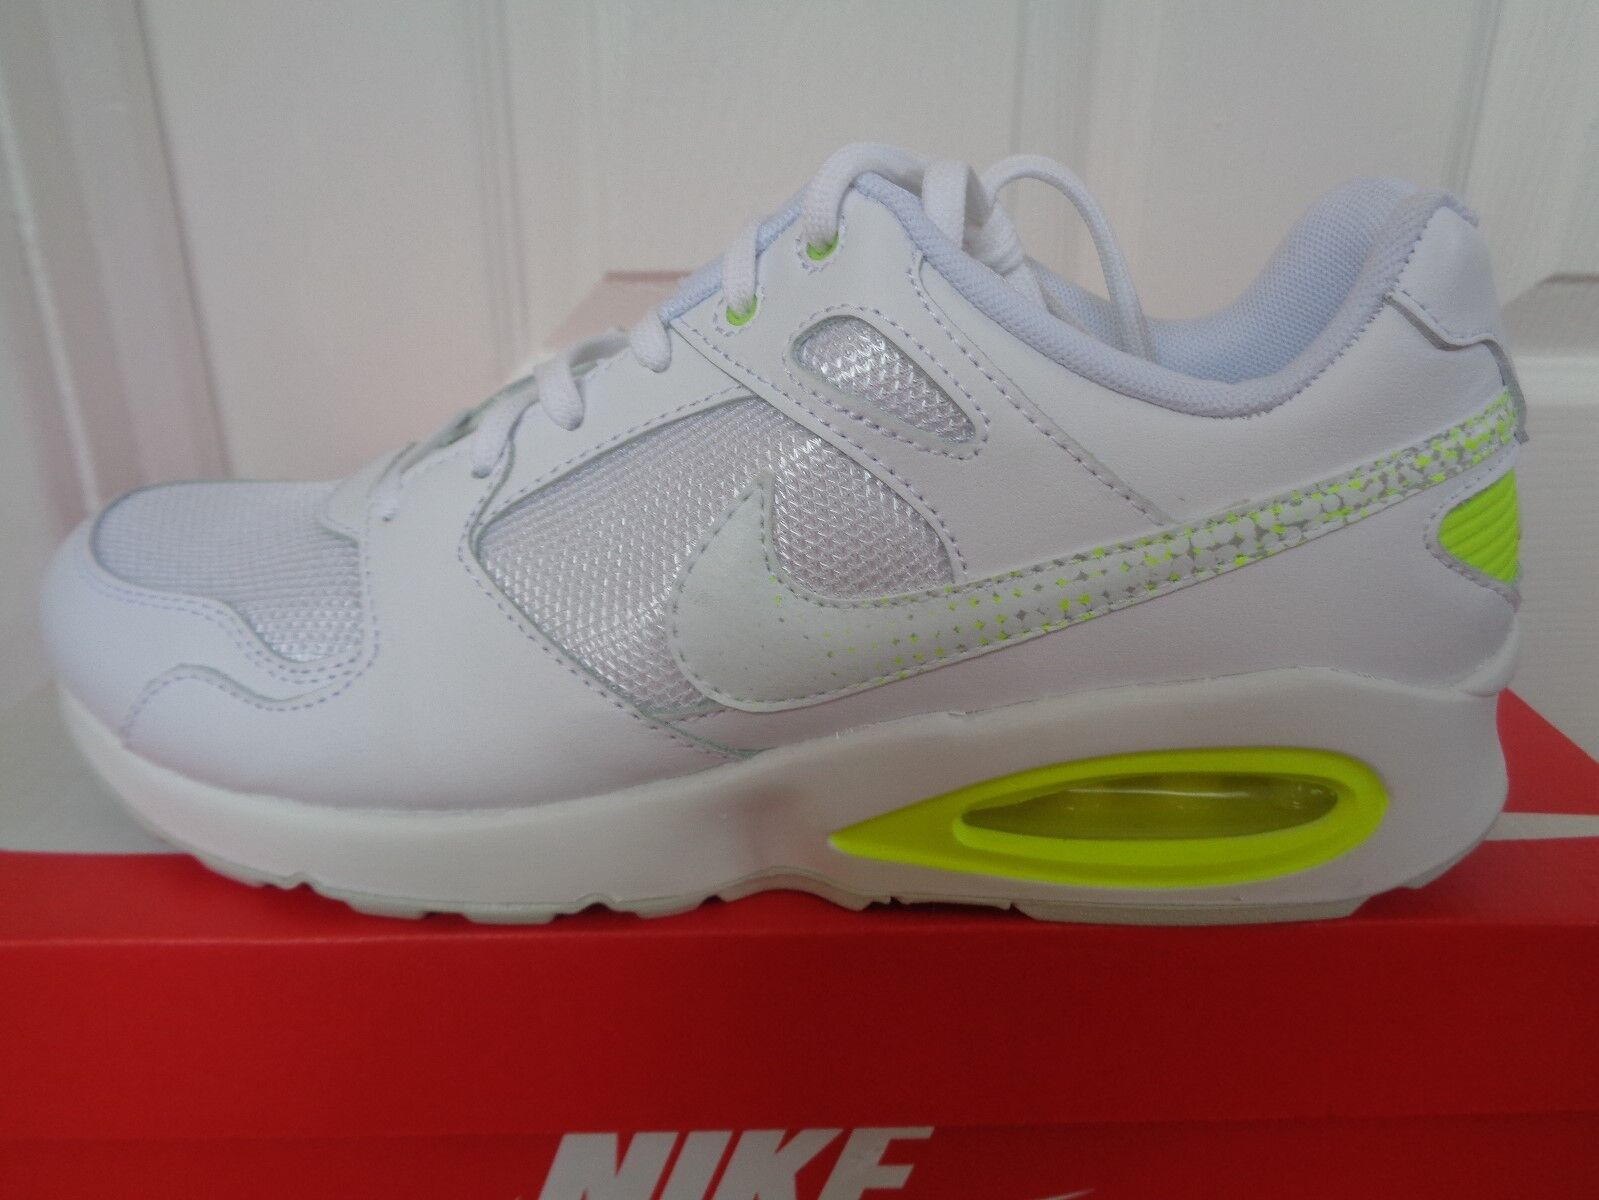 Nike Air Max Coliseum RCR Damenss trainers eu 553441 100 uk 7.5 eu trainers 42 us 10 NEW+BOX b692d7